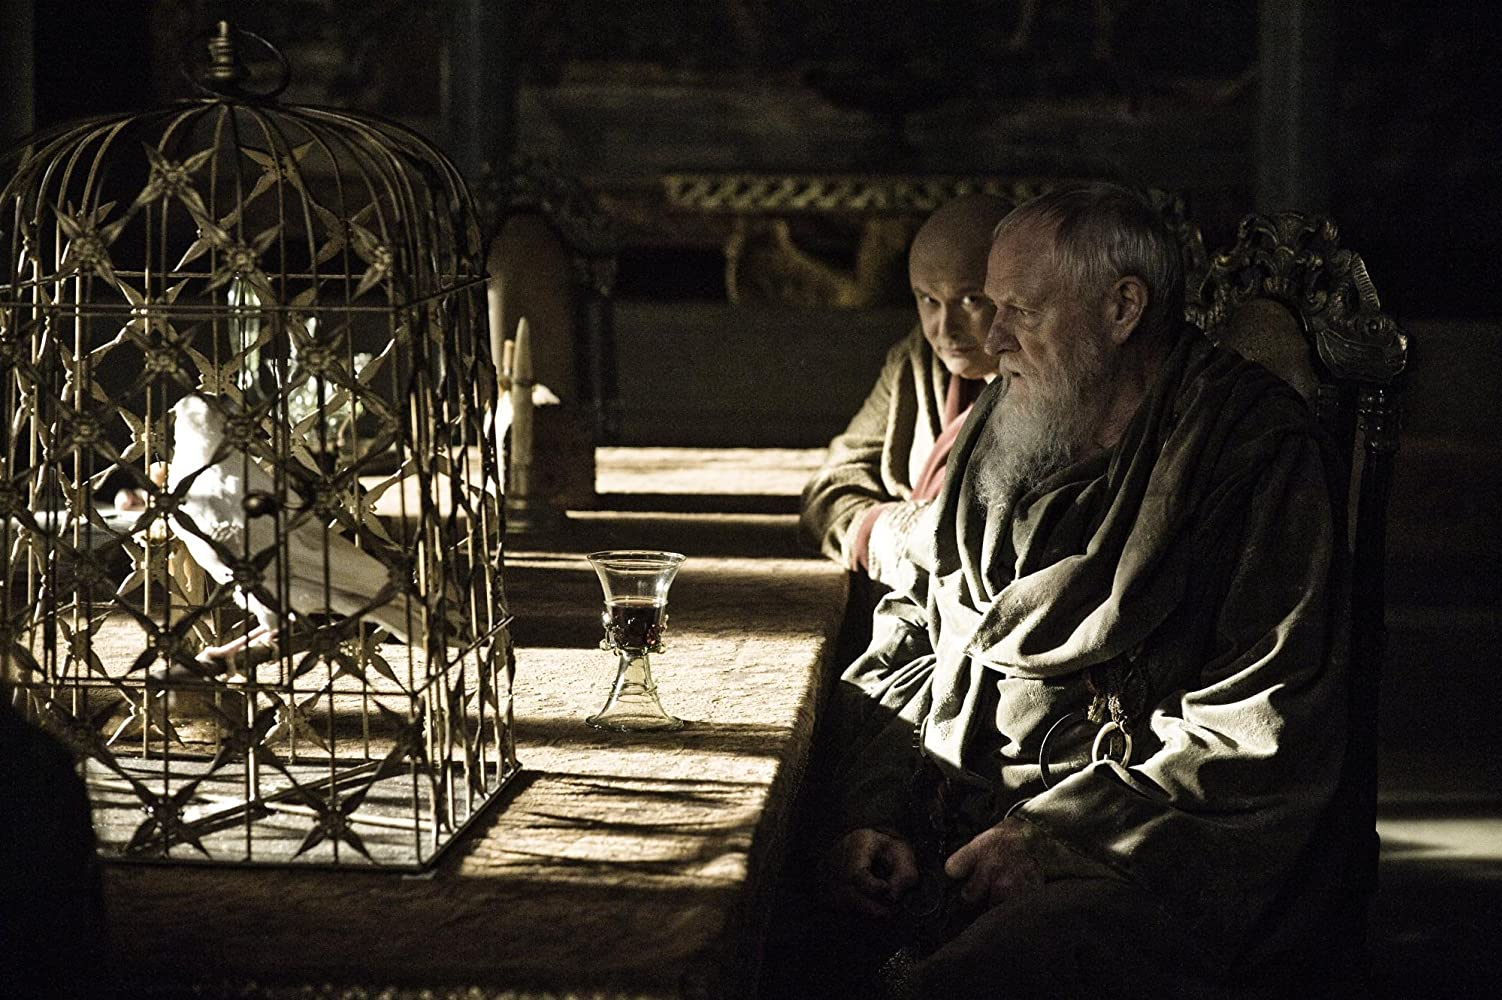 Julian Glover and Conleth Hill in Game of Thrones (2011)